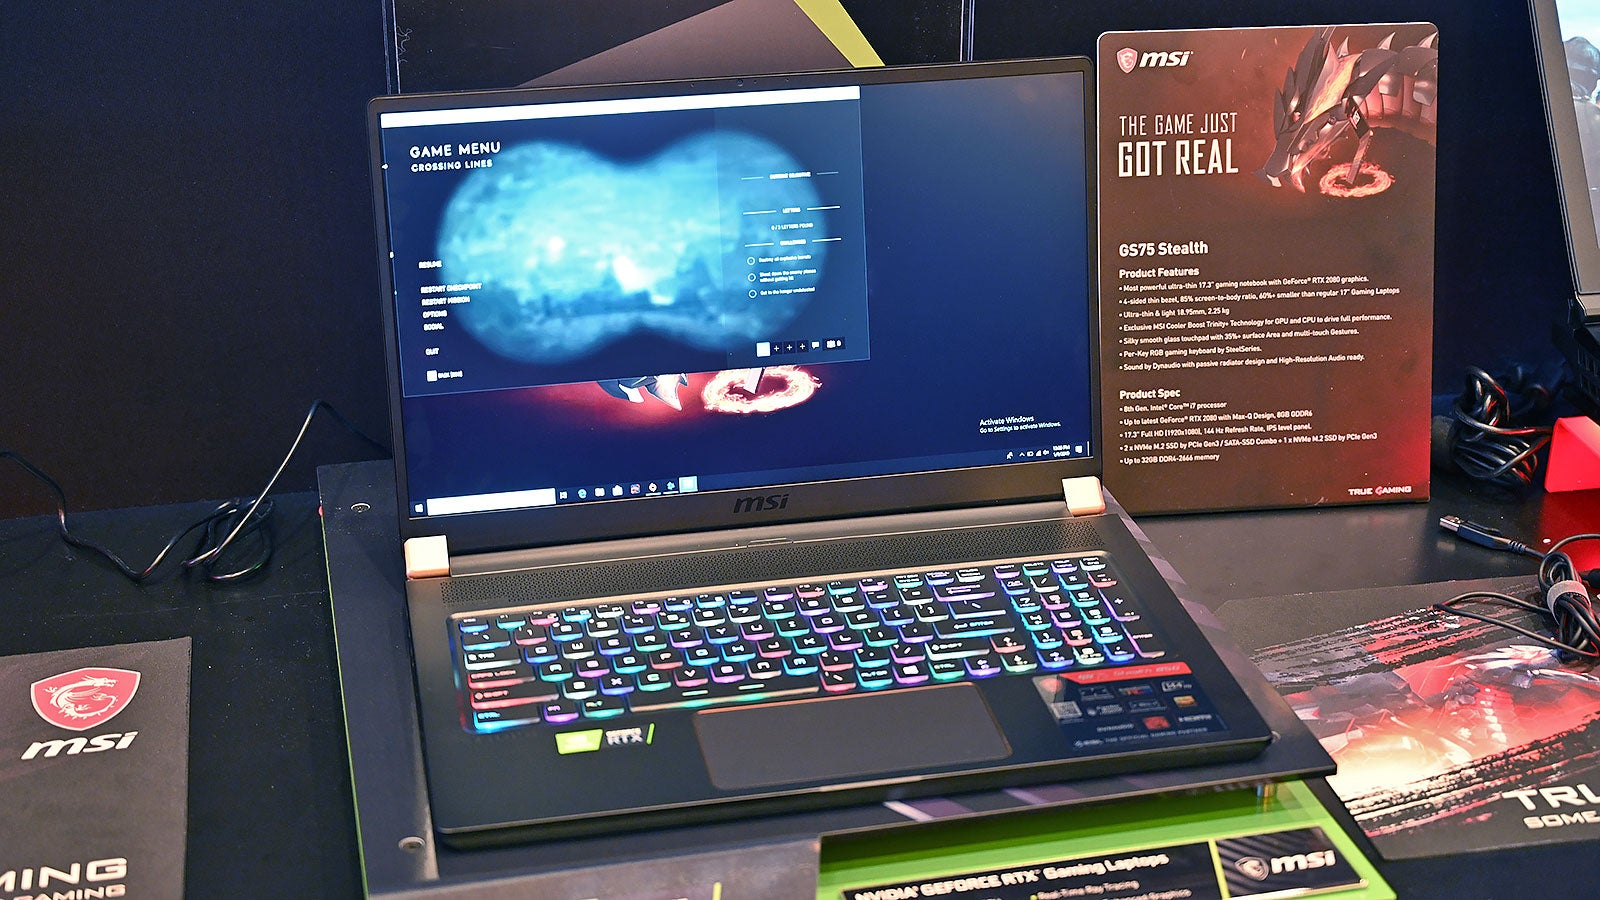 MSI's Latest Laptops Are Smaller, Sturdier, and Some Even Vibrate